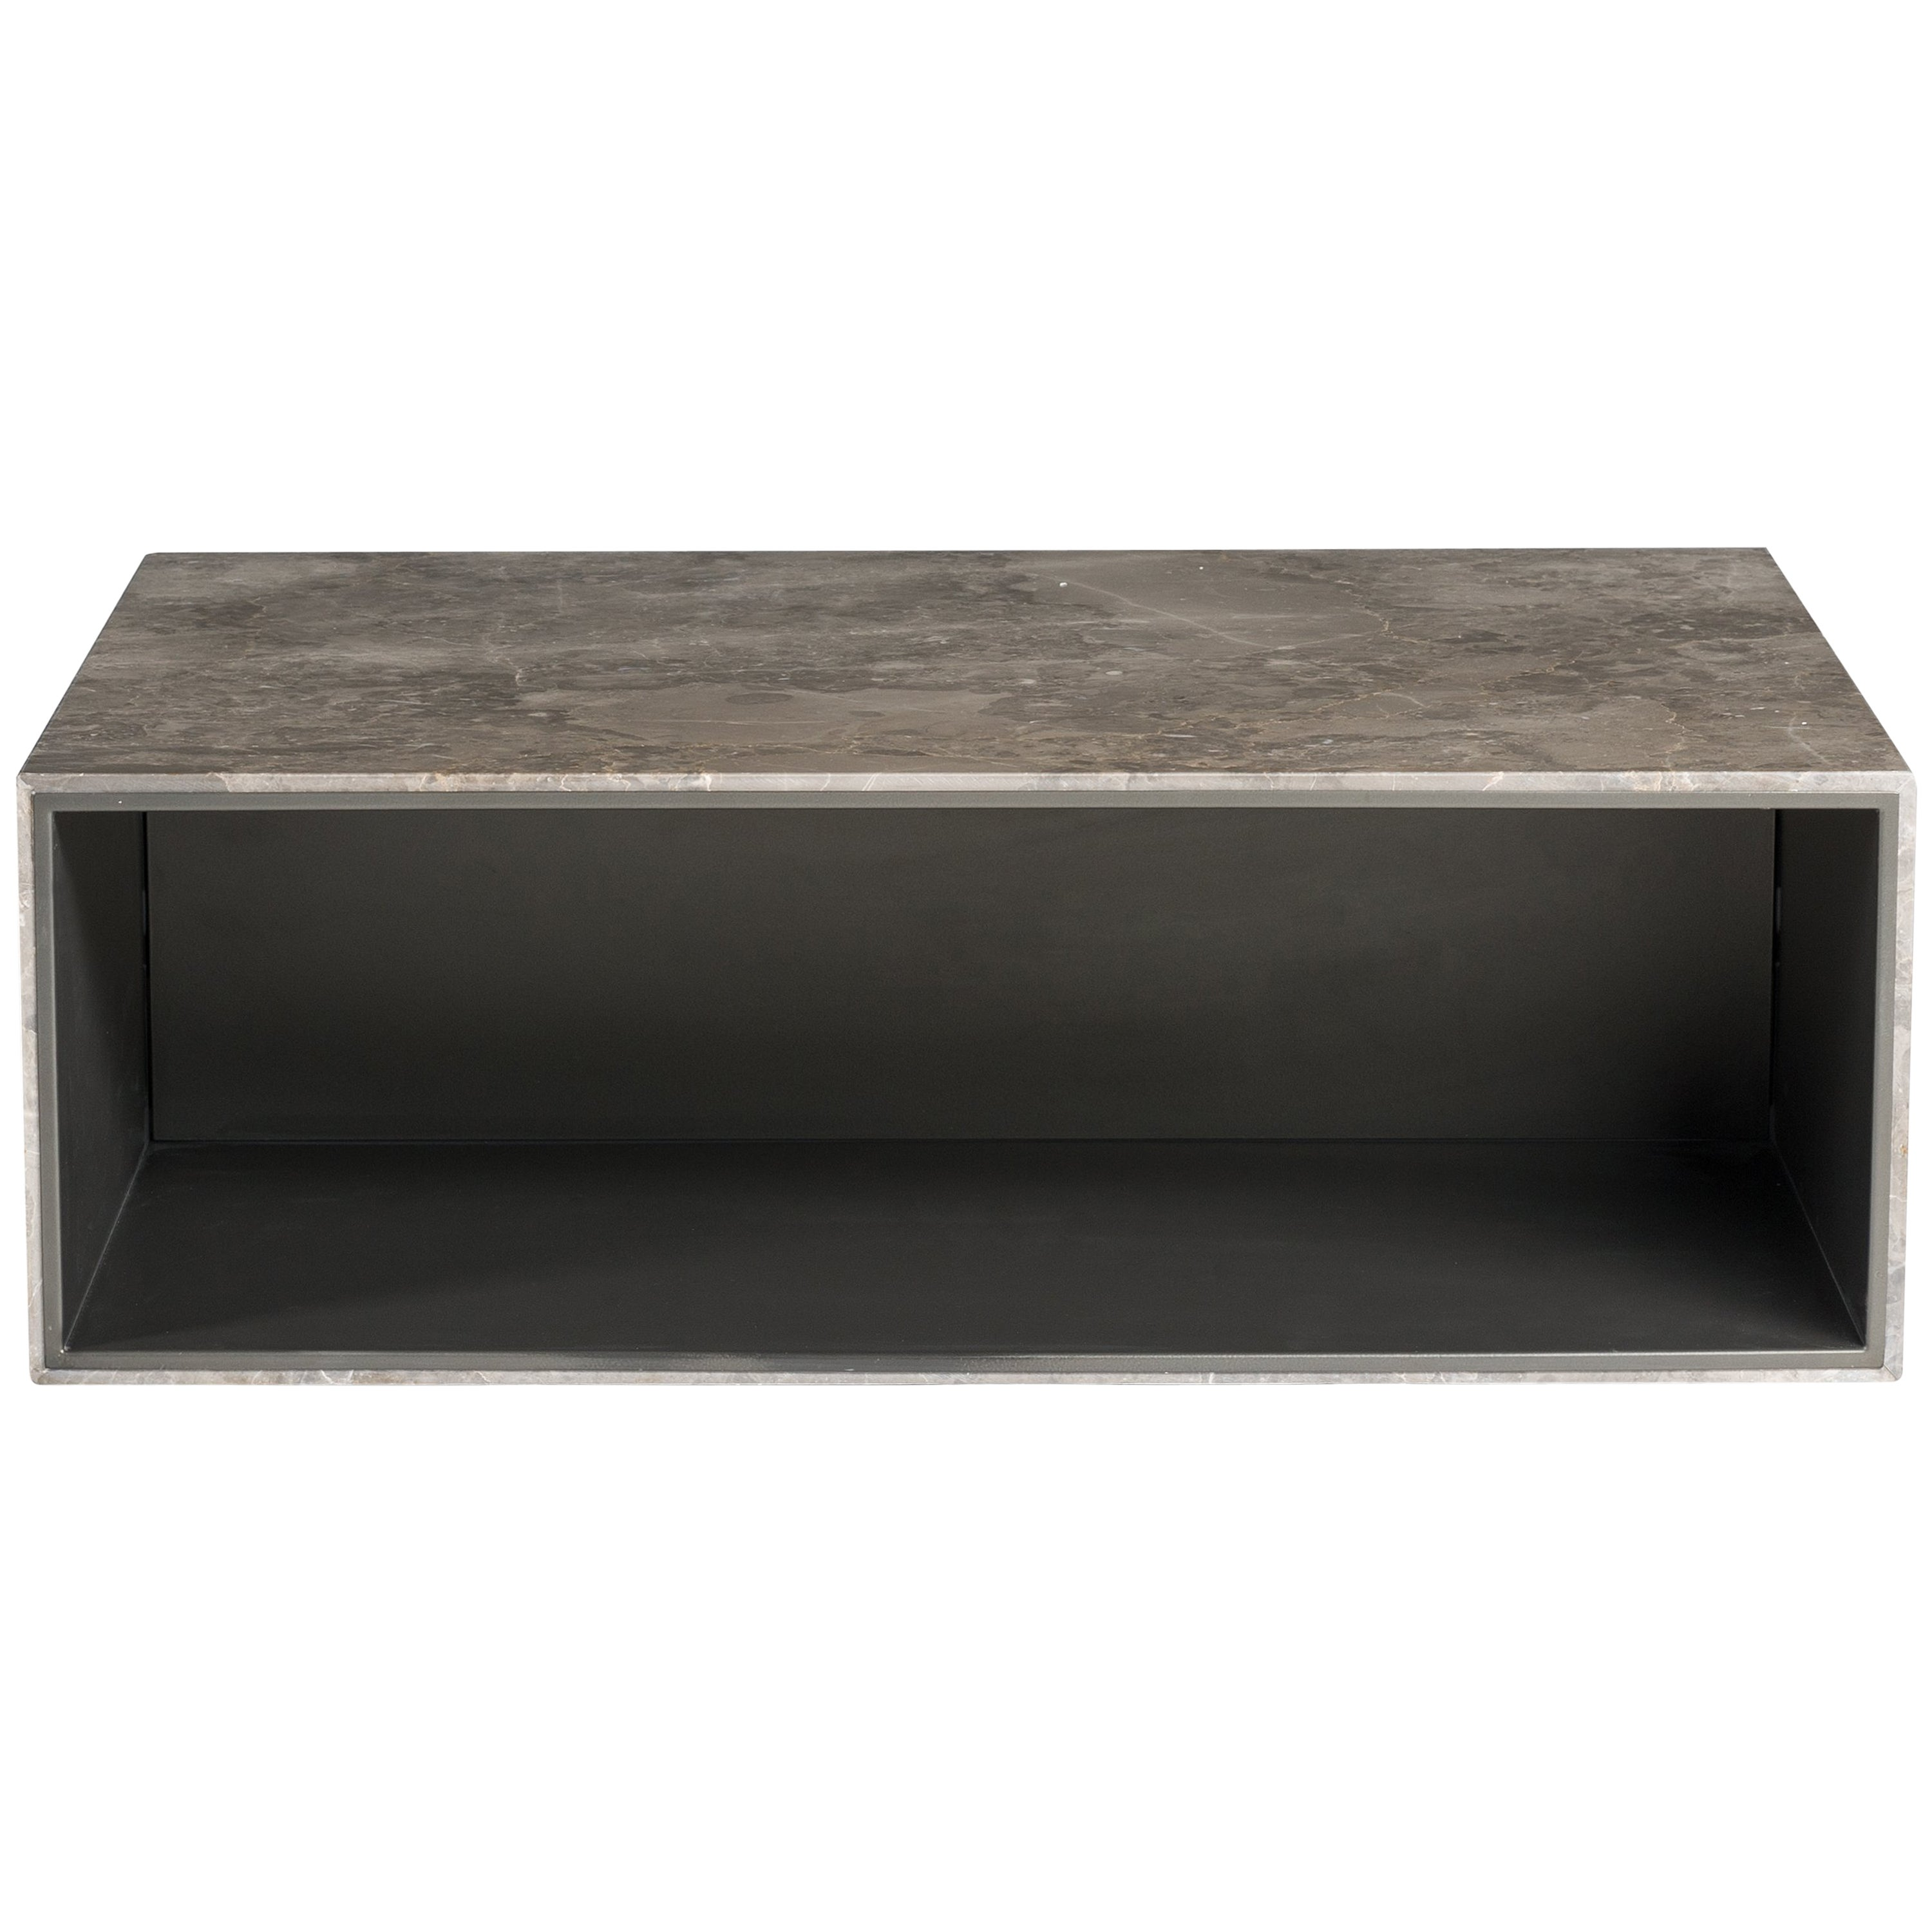 Salvatori ciane floating shelf in gris du marais marble by elisa ossino for sale at 1stdibs